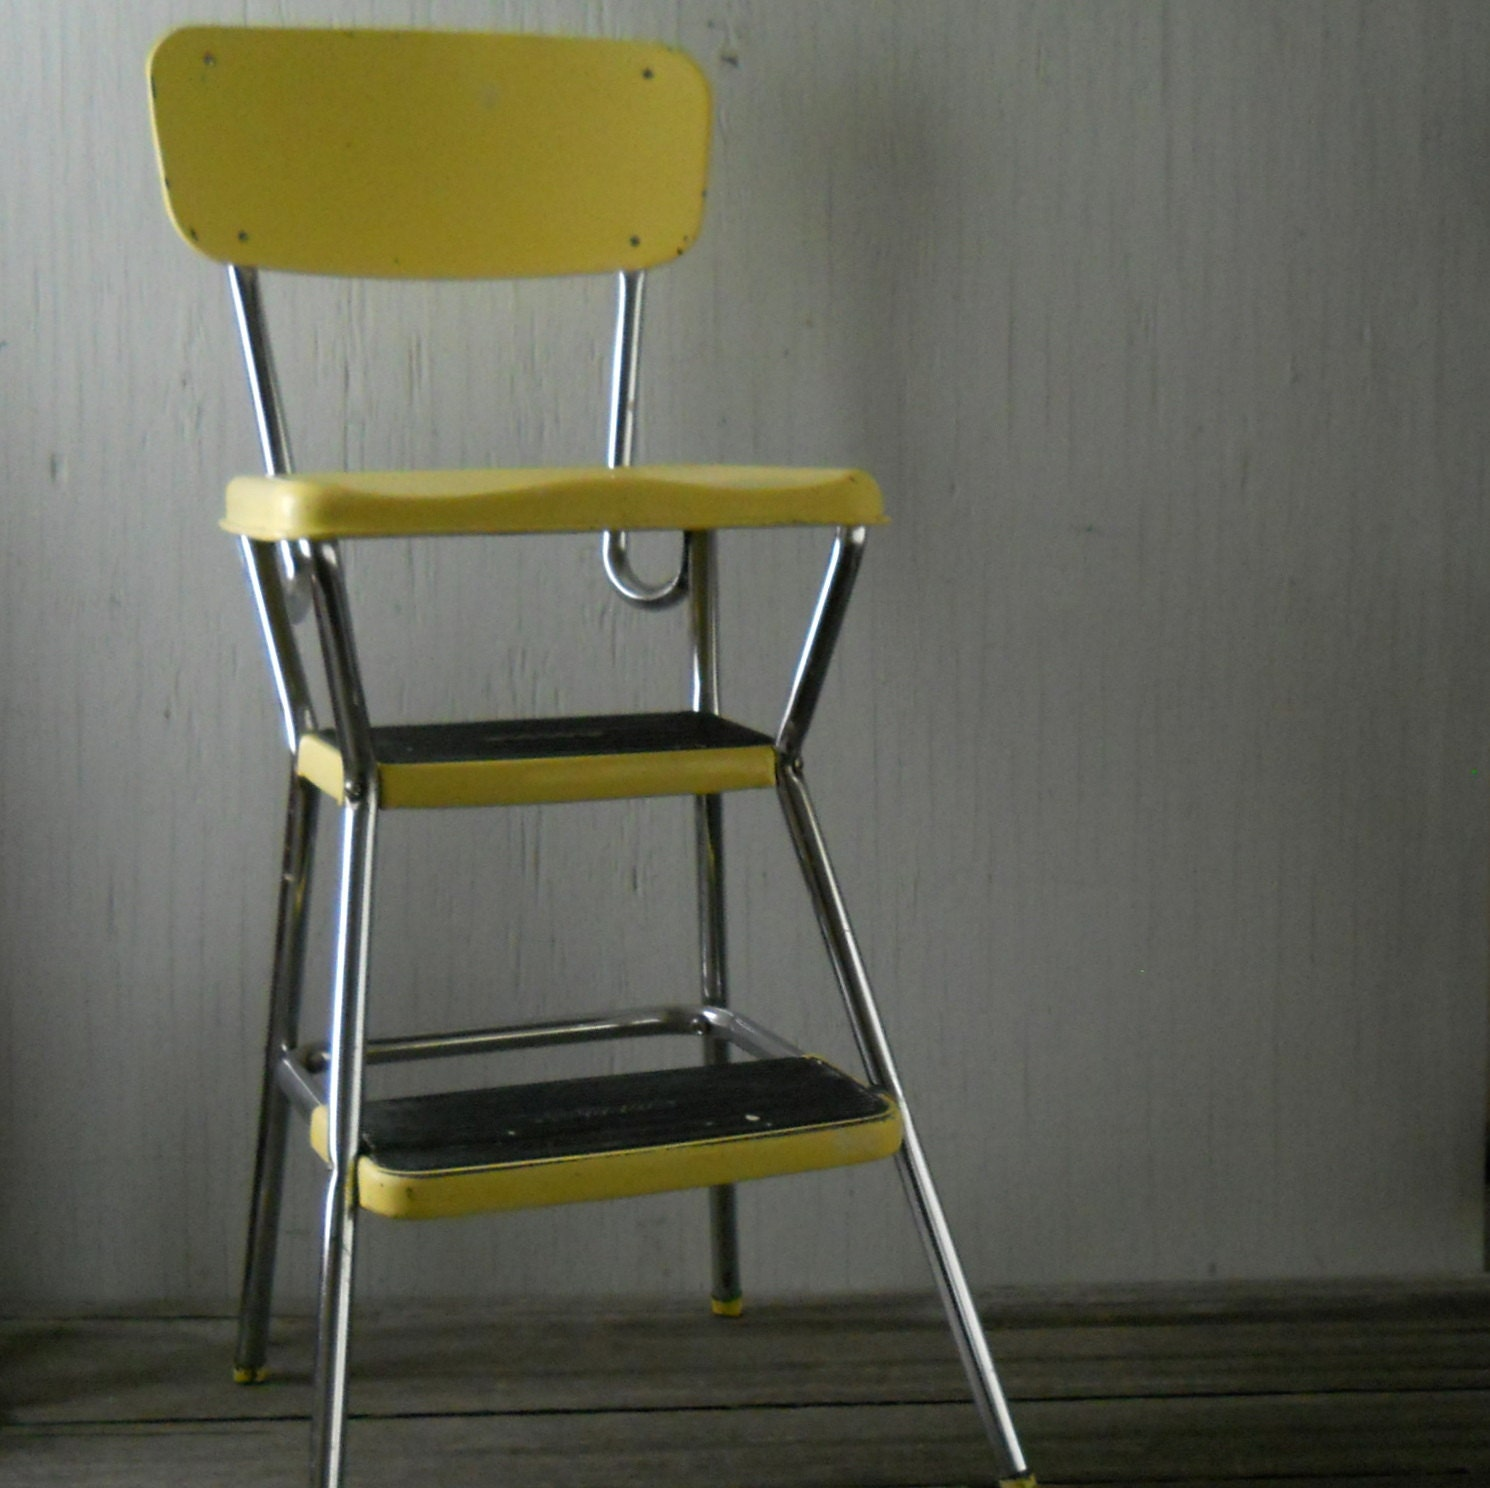 Cosco step stool chair -  Vintage Yellow Cosco Step Stool Zoom